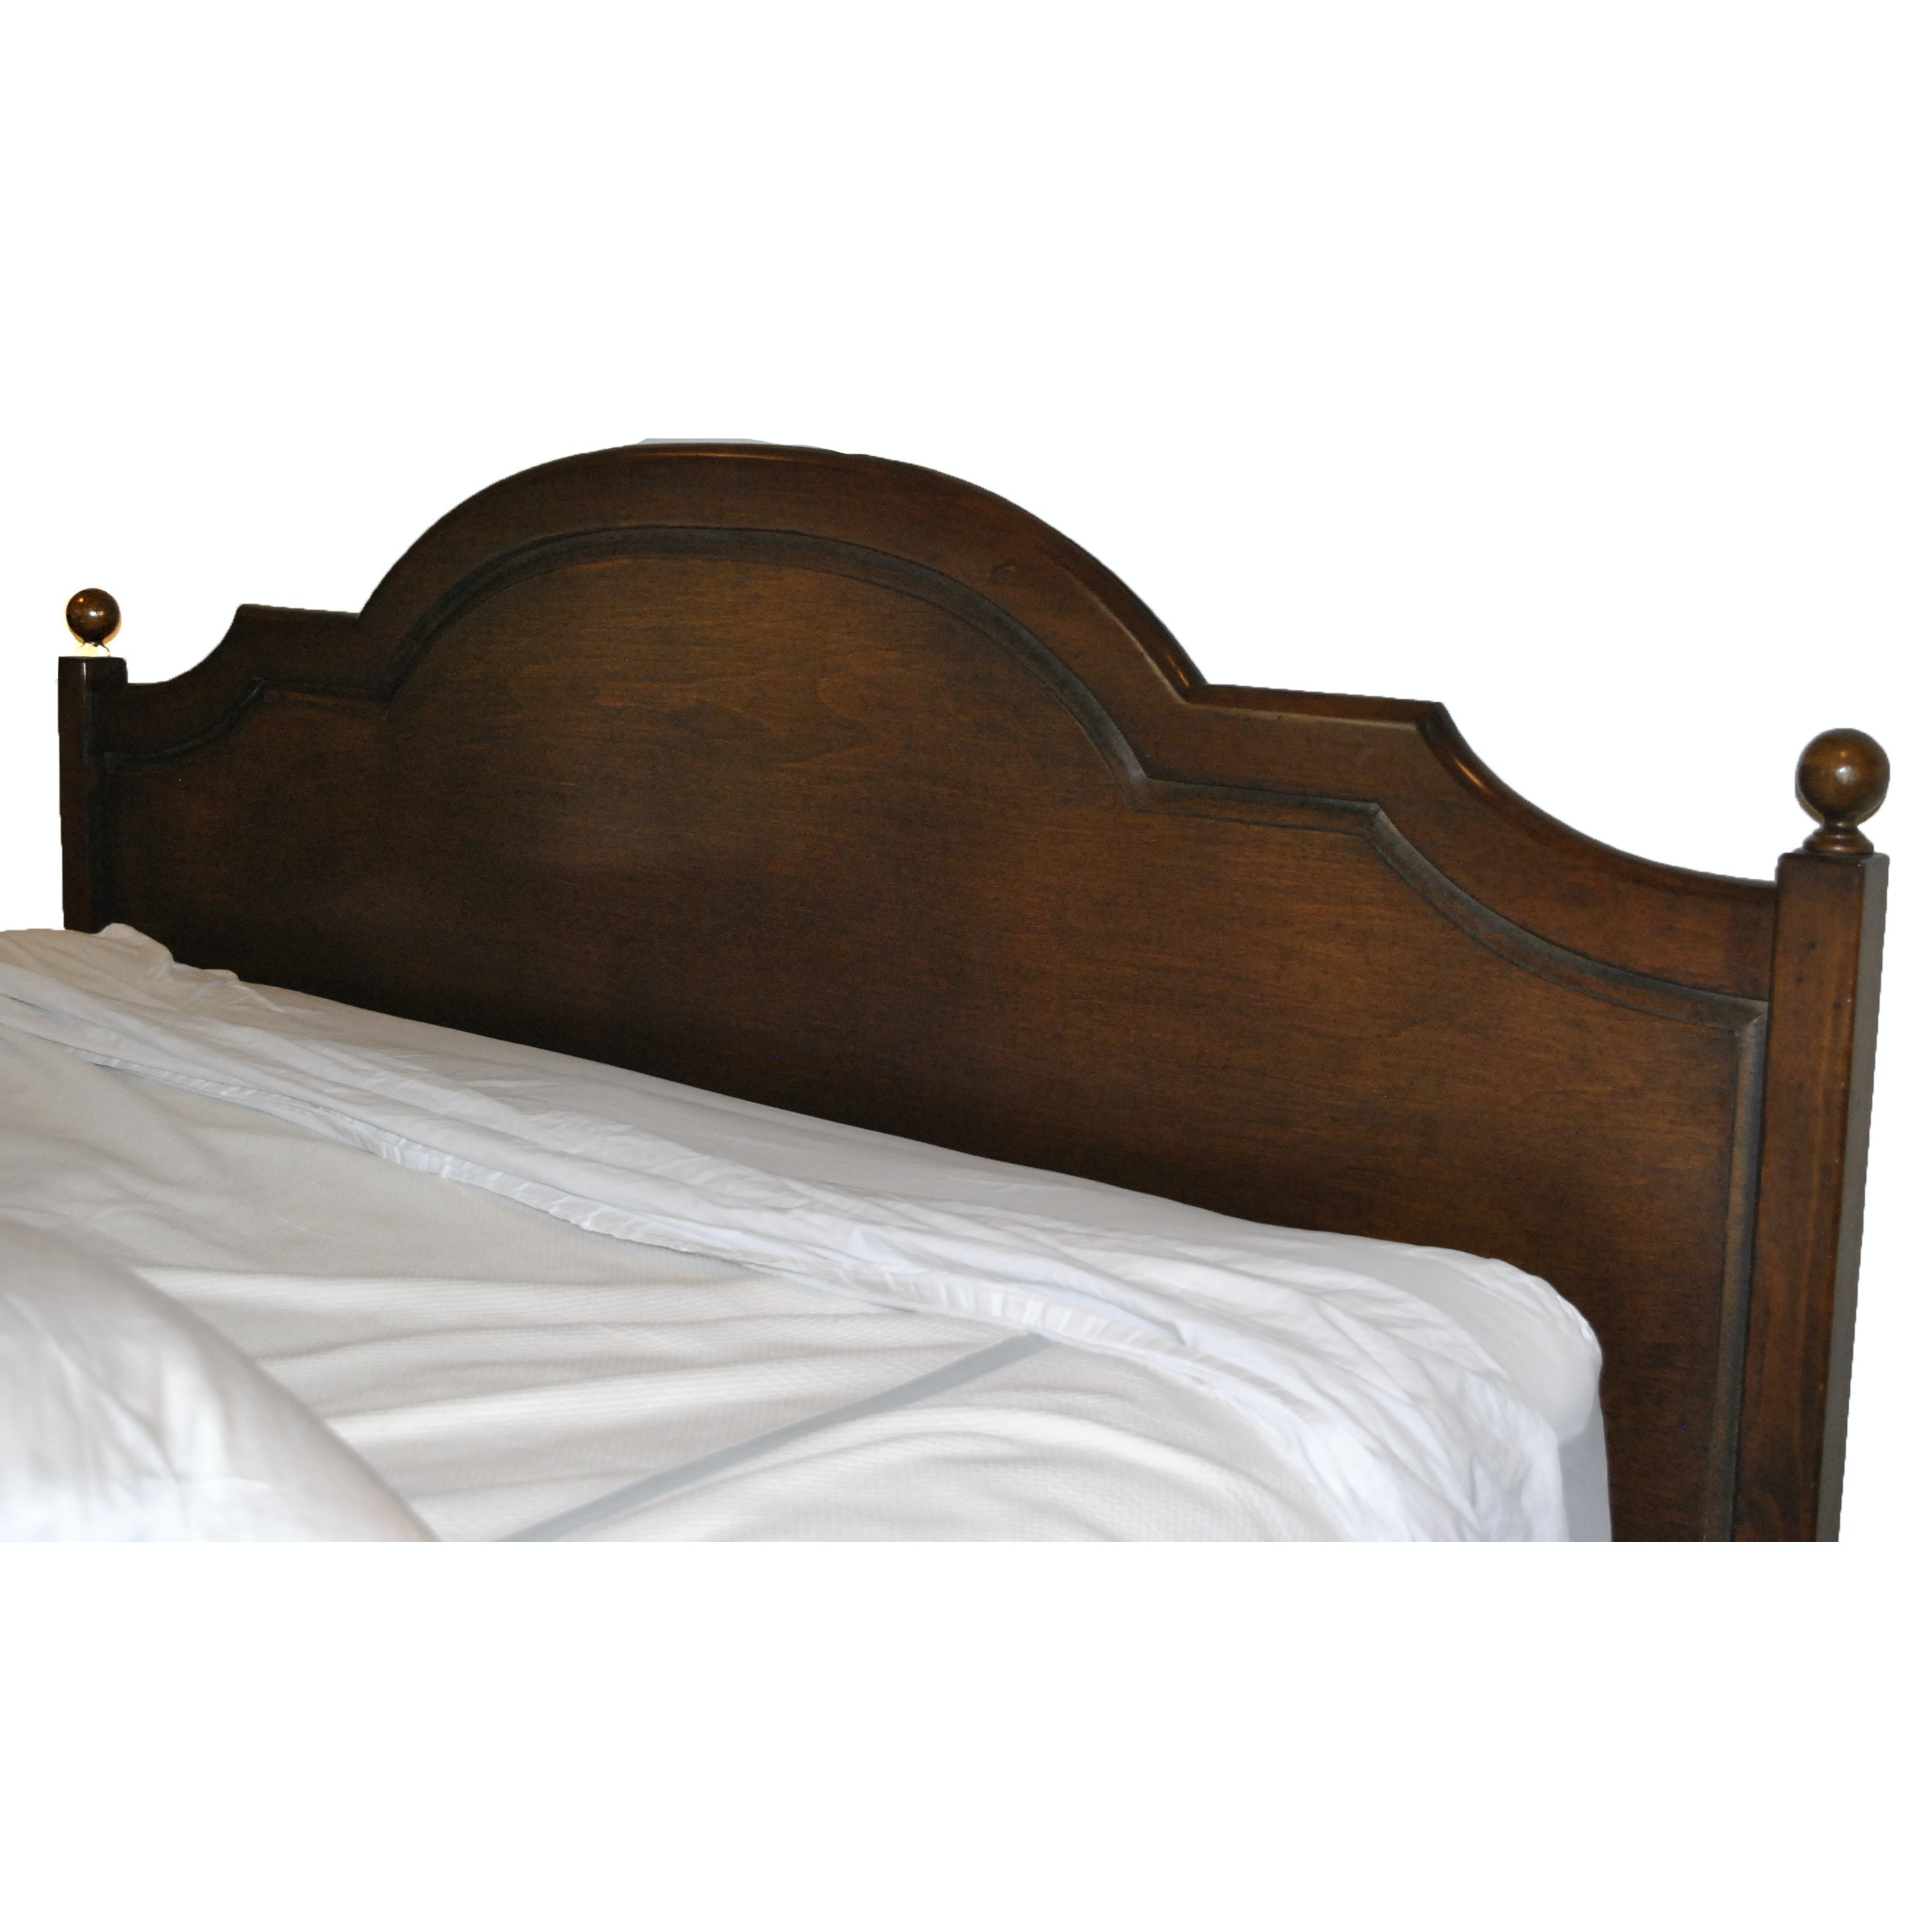 Contemporary King Size Headboard and Footboard